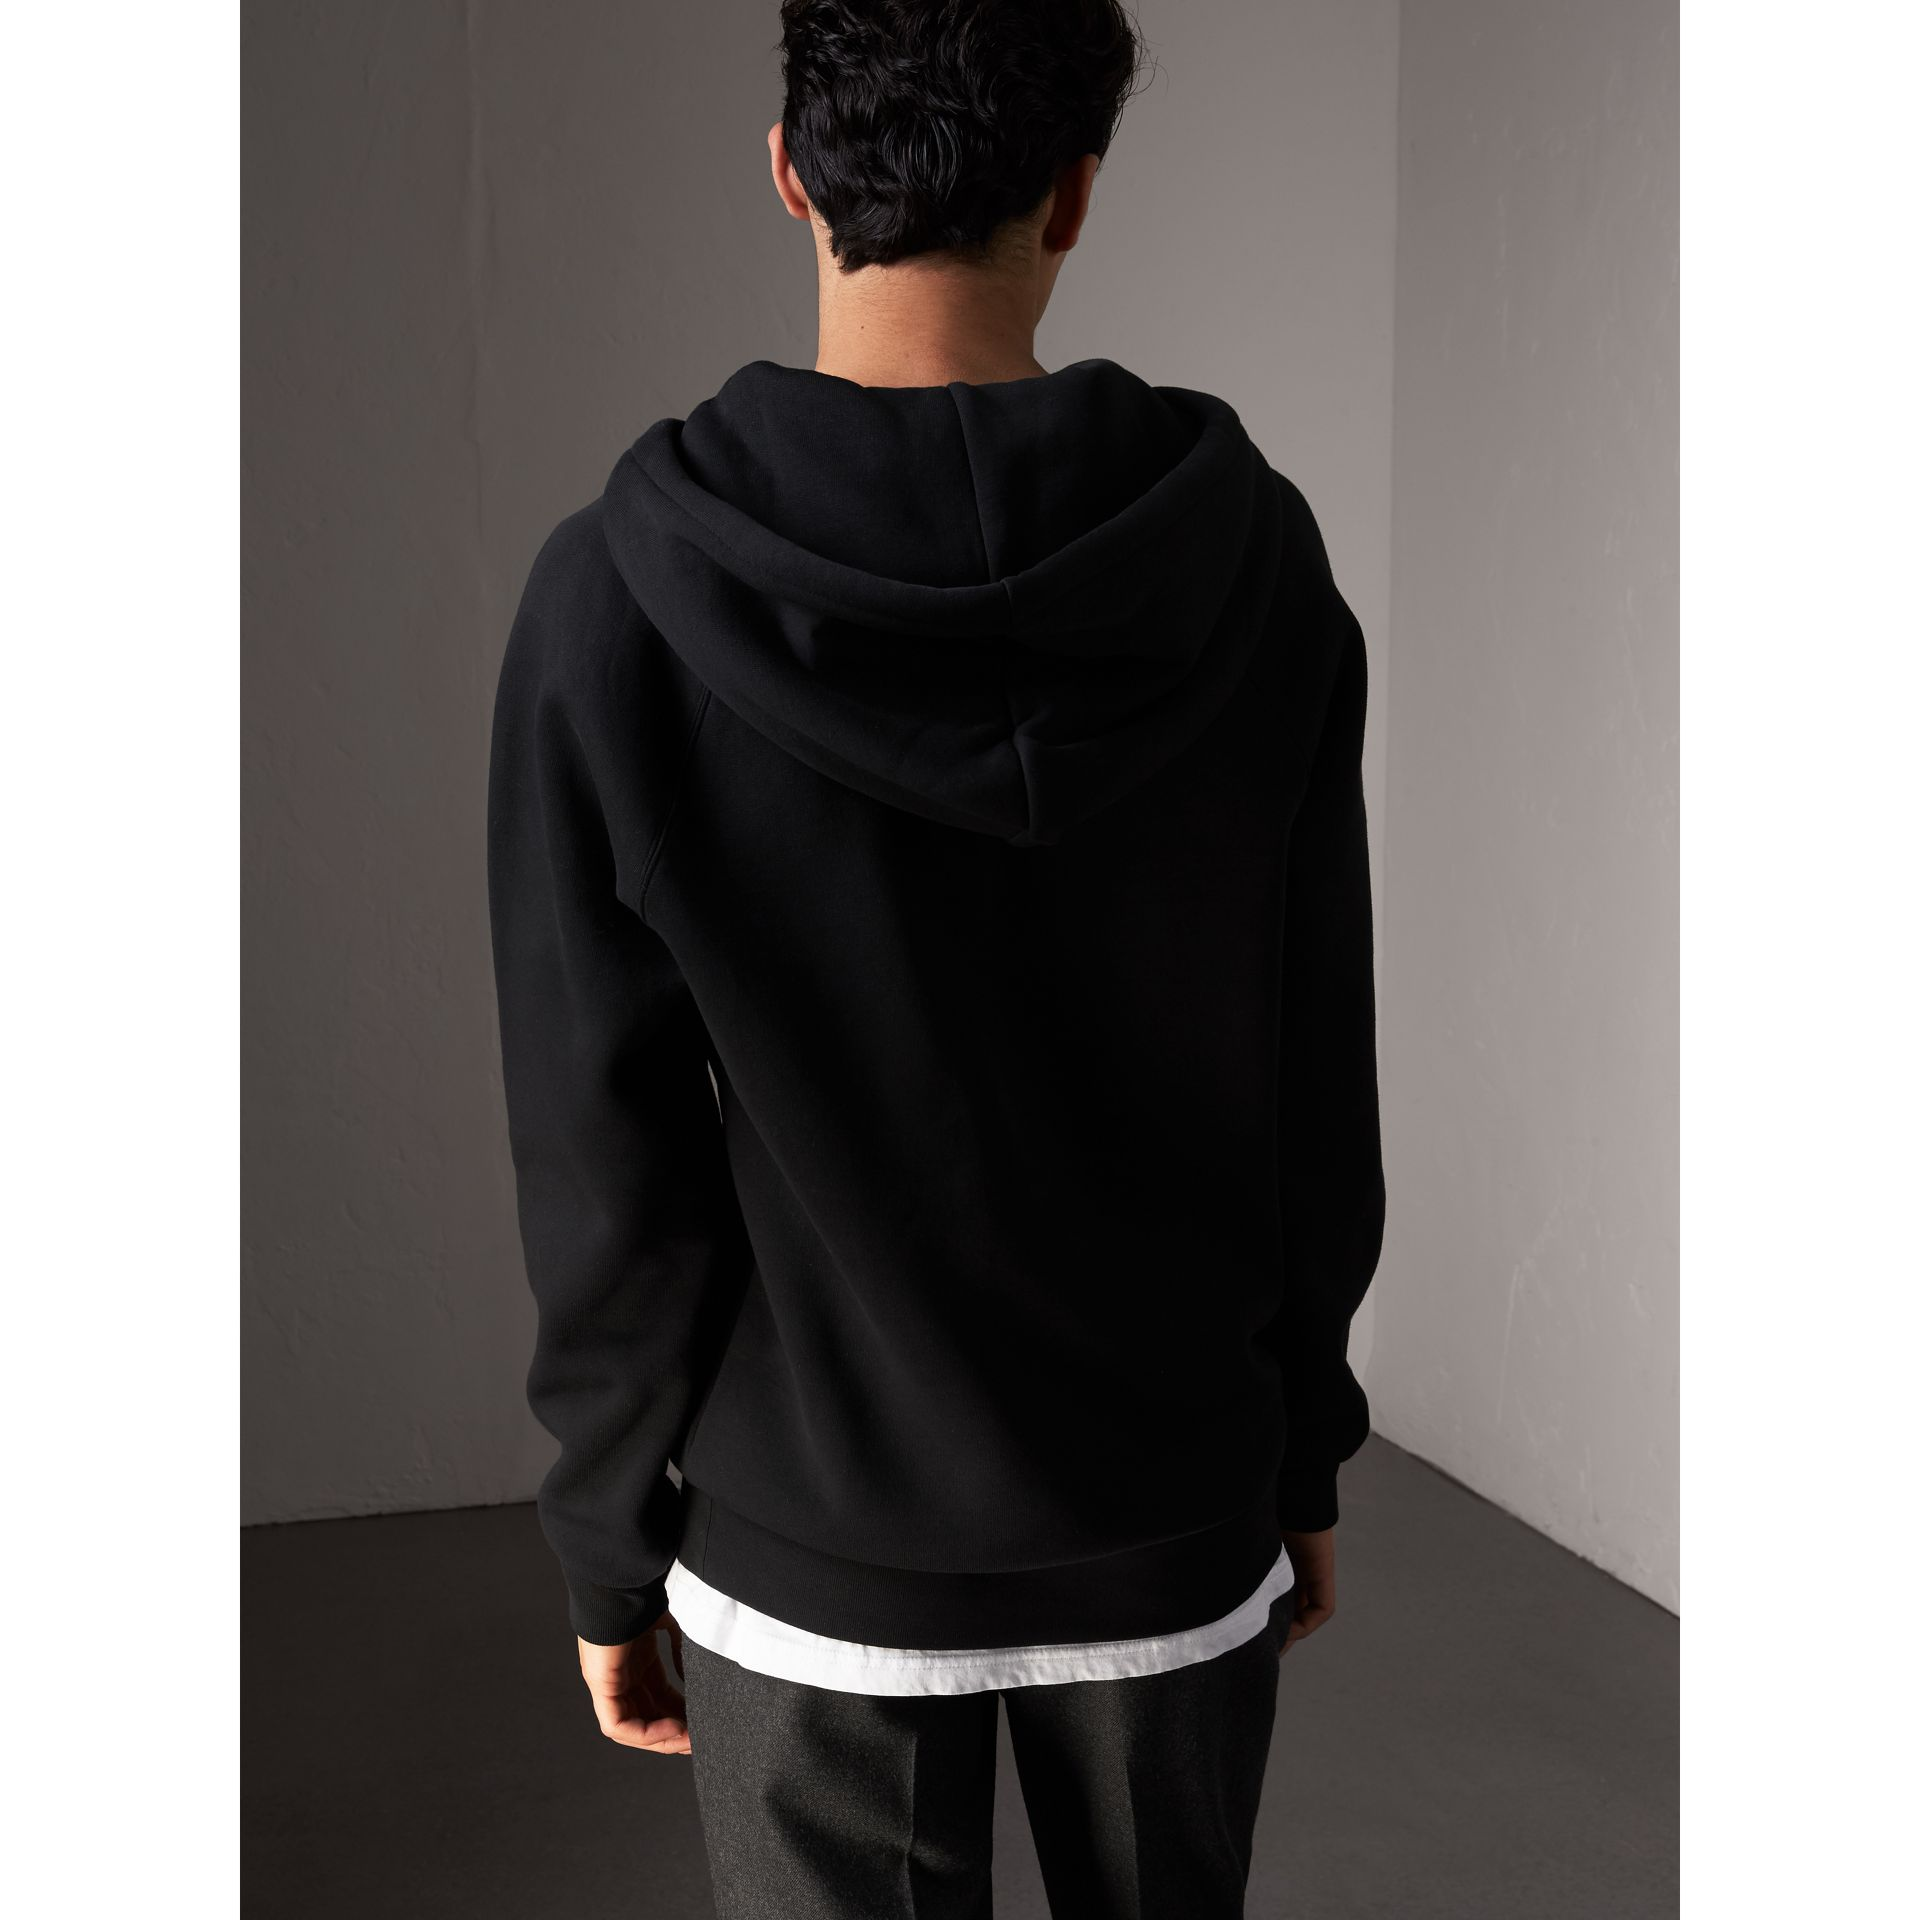 Embroidered Hooded Sweatshirt in Black - Men | Burberry - gallery image 3